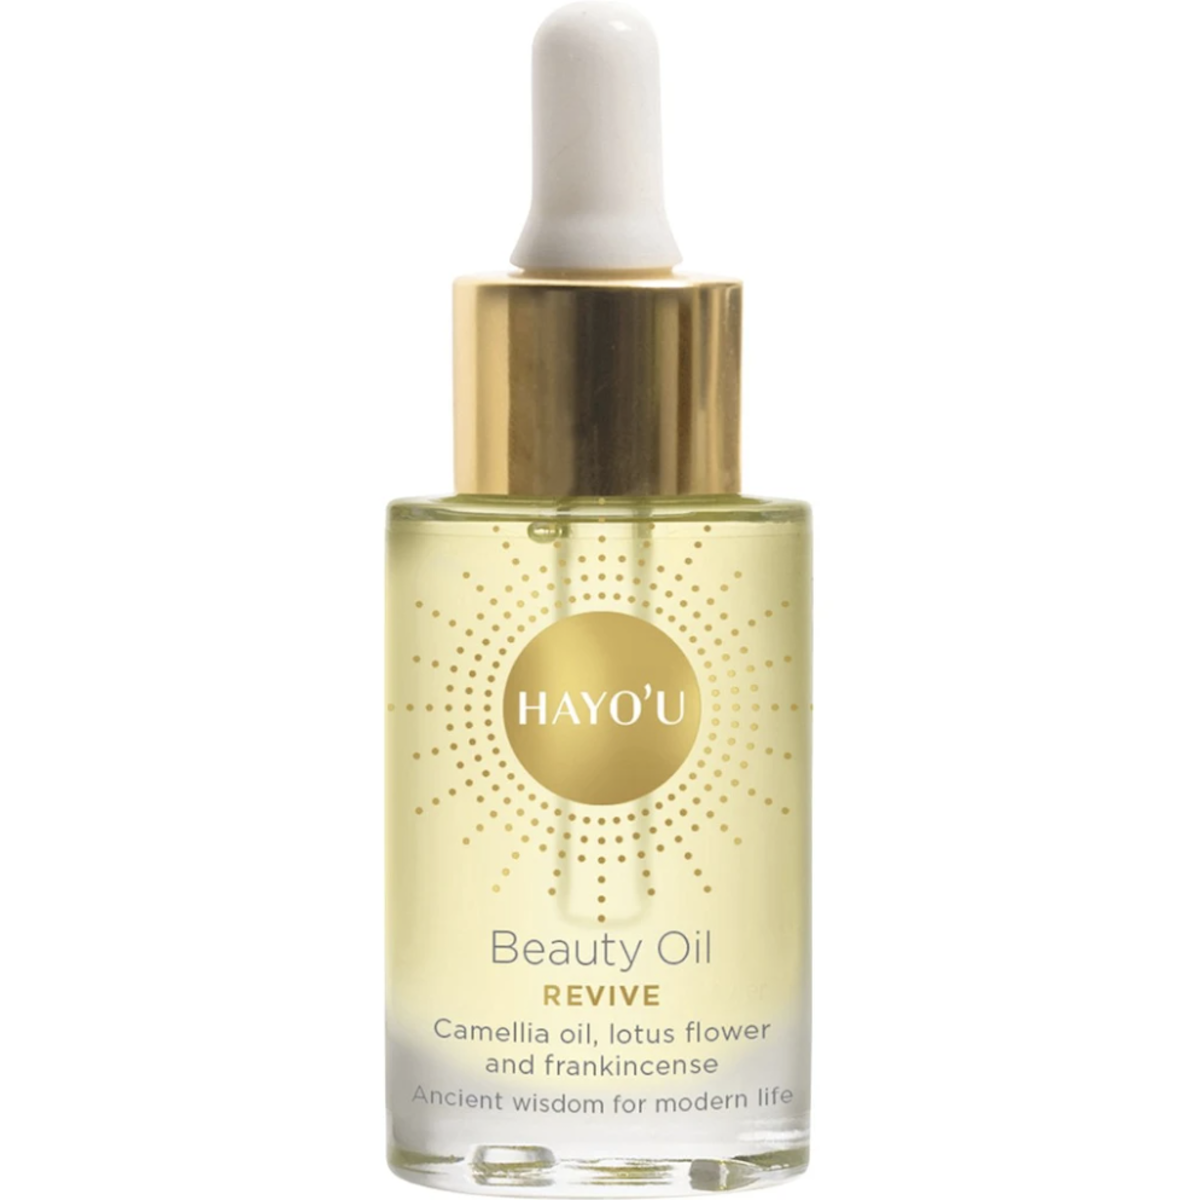 Hayou Beauty Oil with Camelia oil, lotus flower